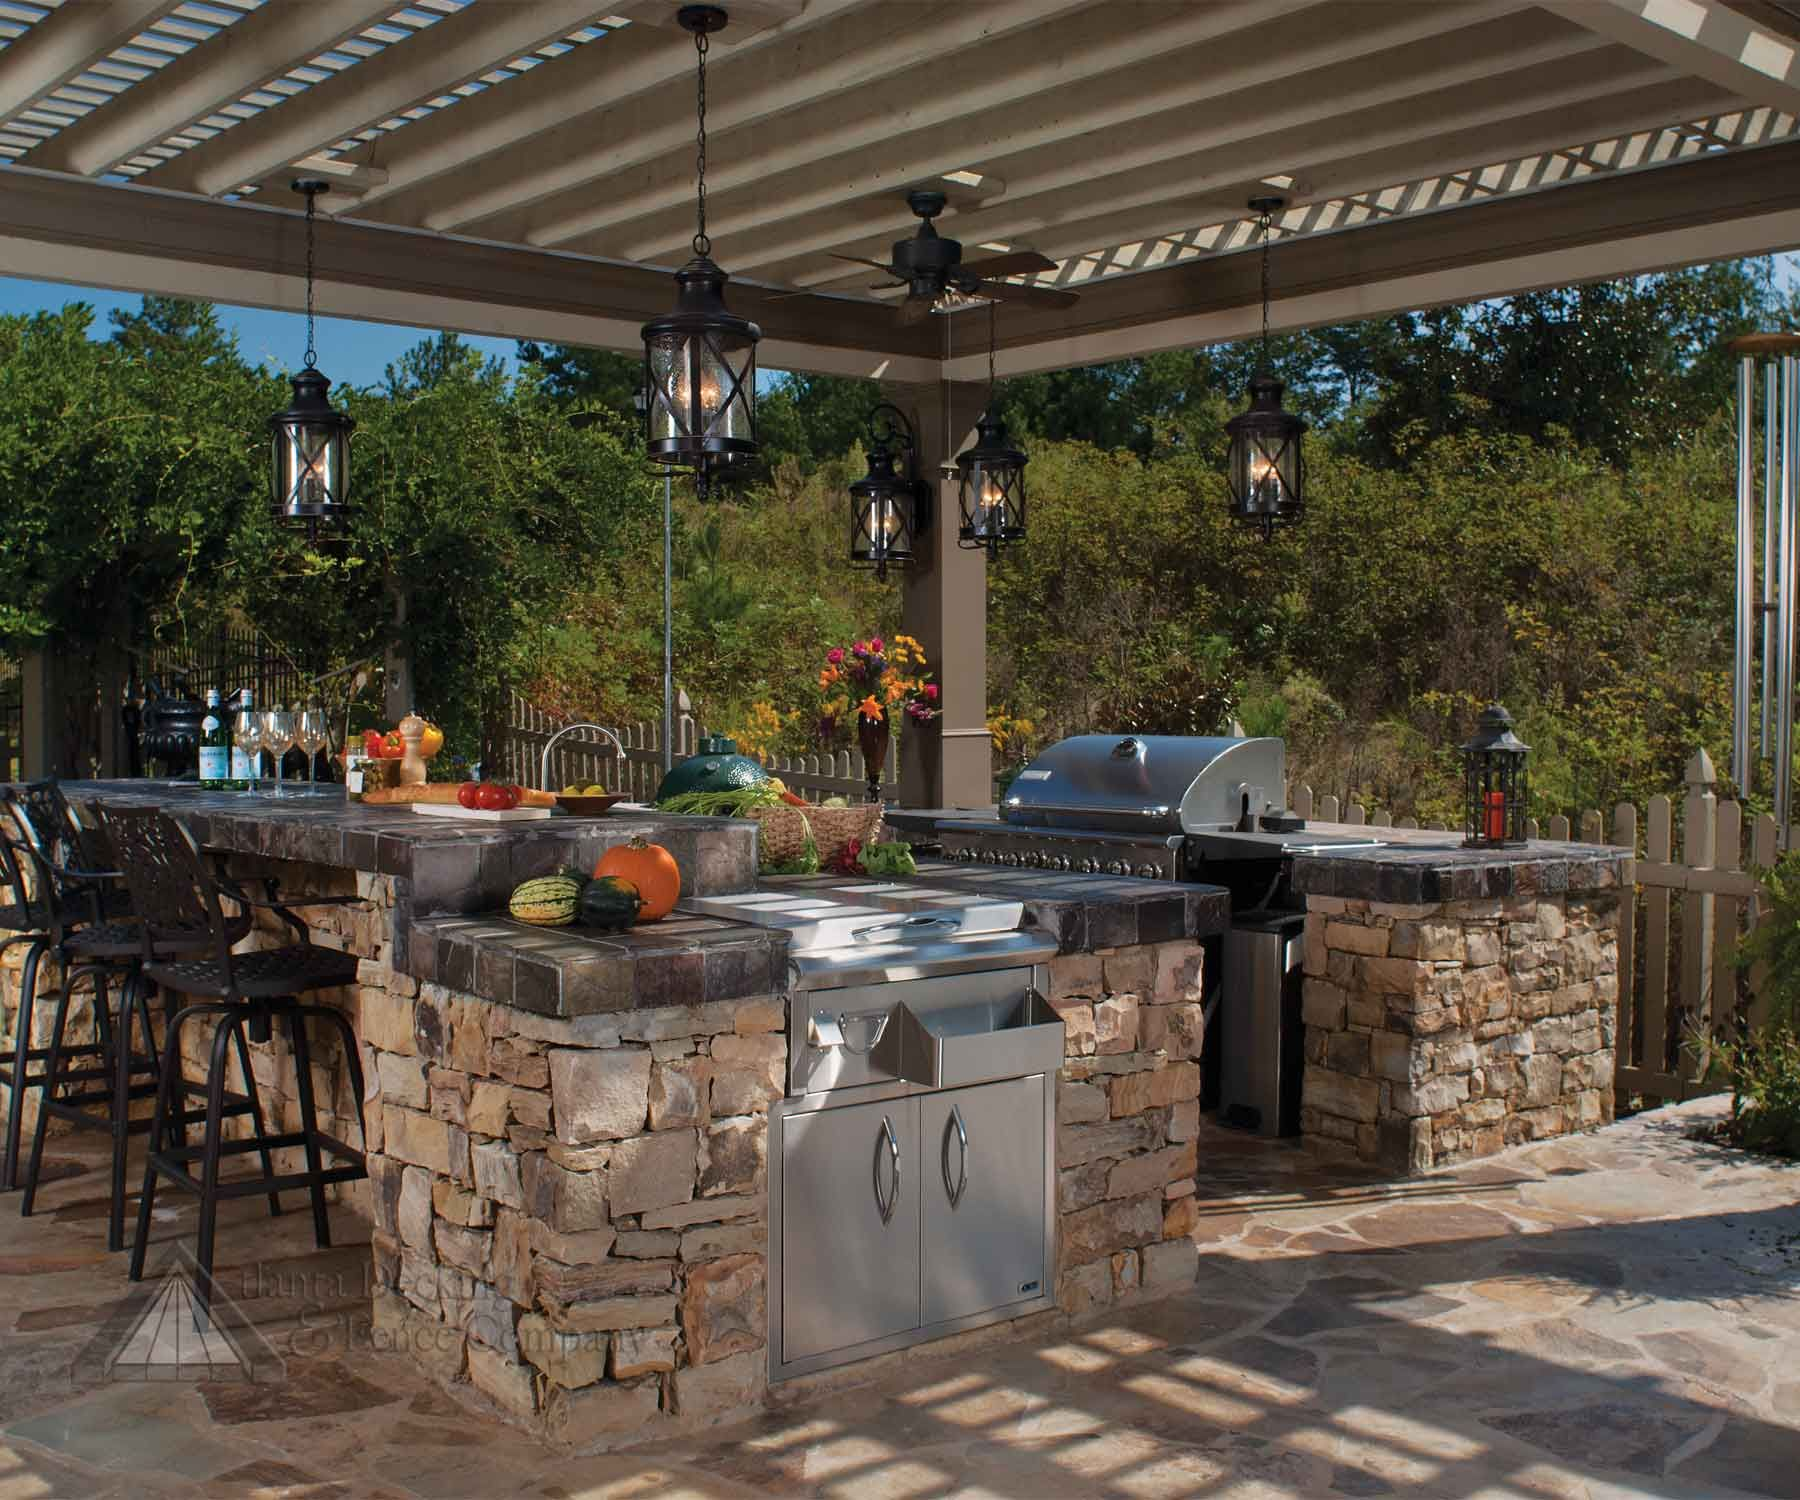 patio kitchen ideas rustic patio kitchen and bar amazing outdoor kitchens part 3 - Inexpensive Outdoor Kitchen Ideas